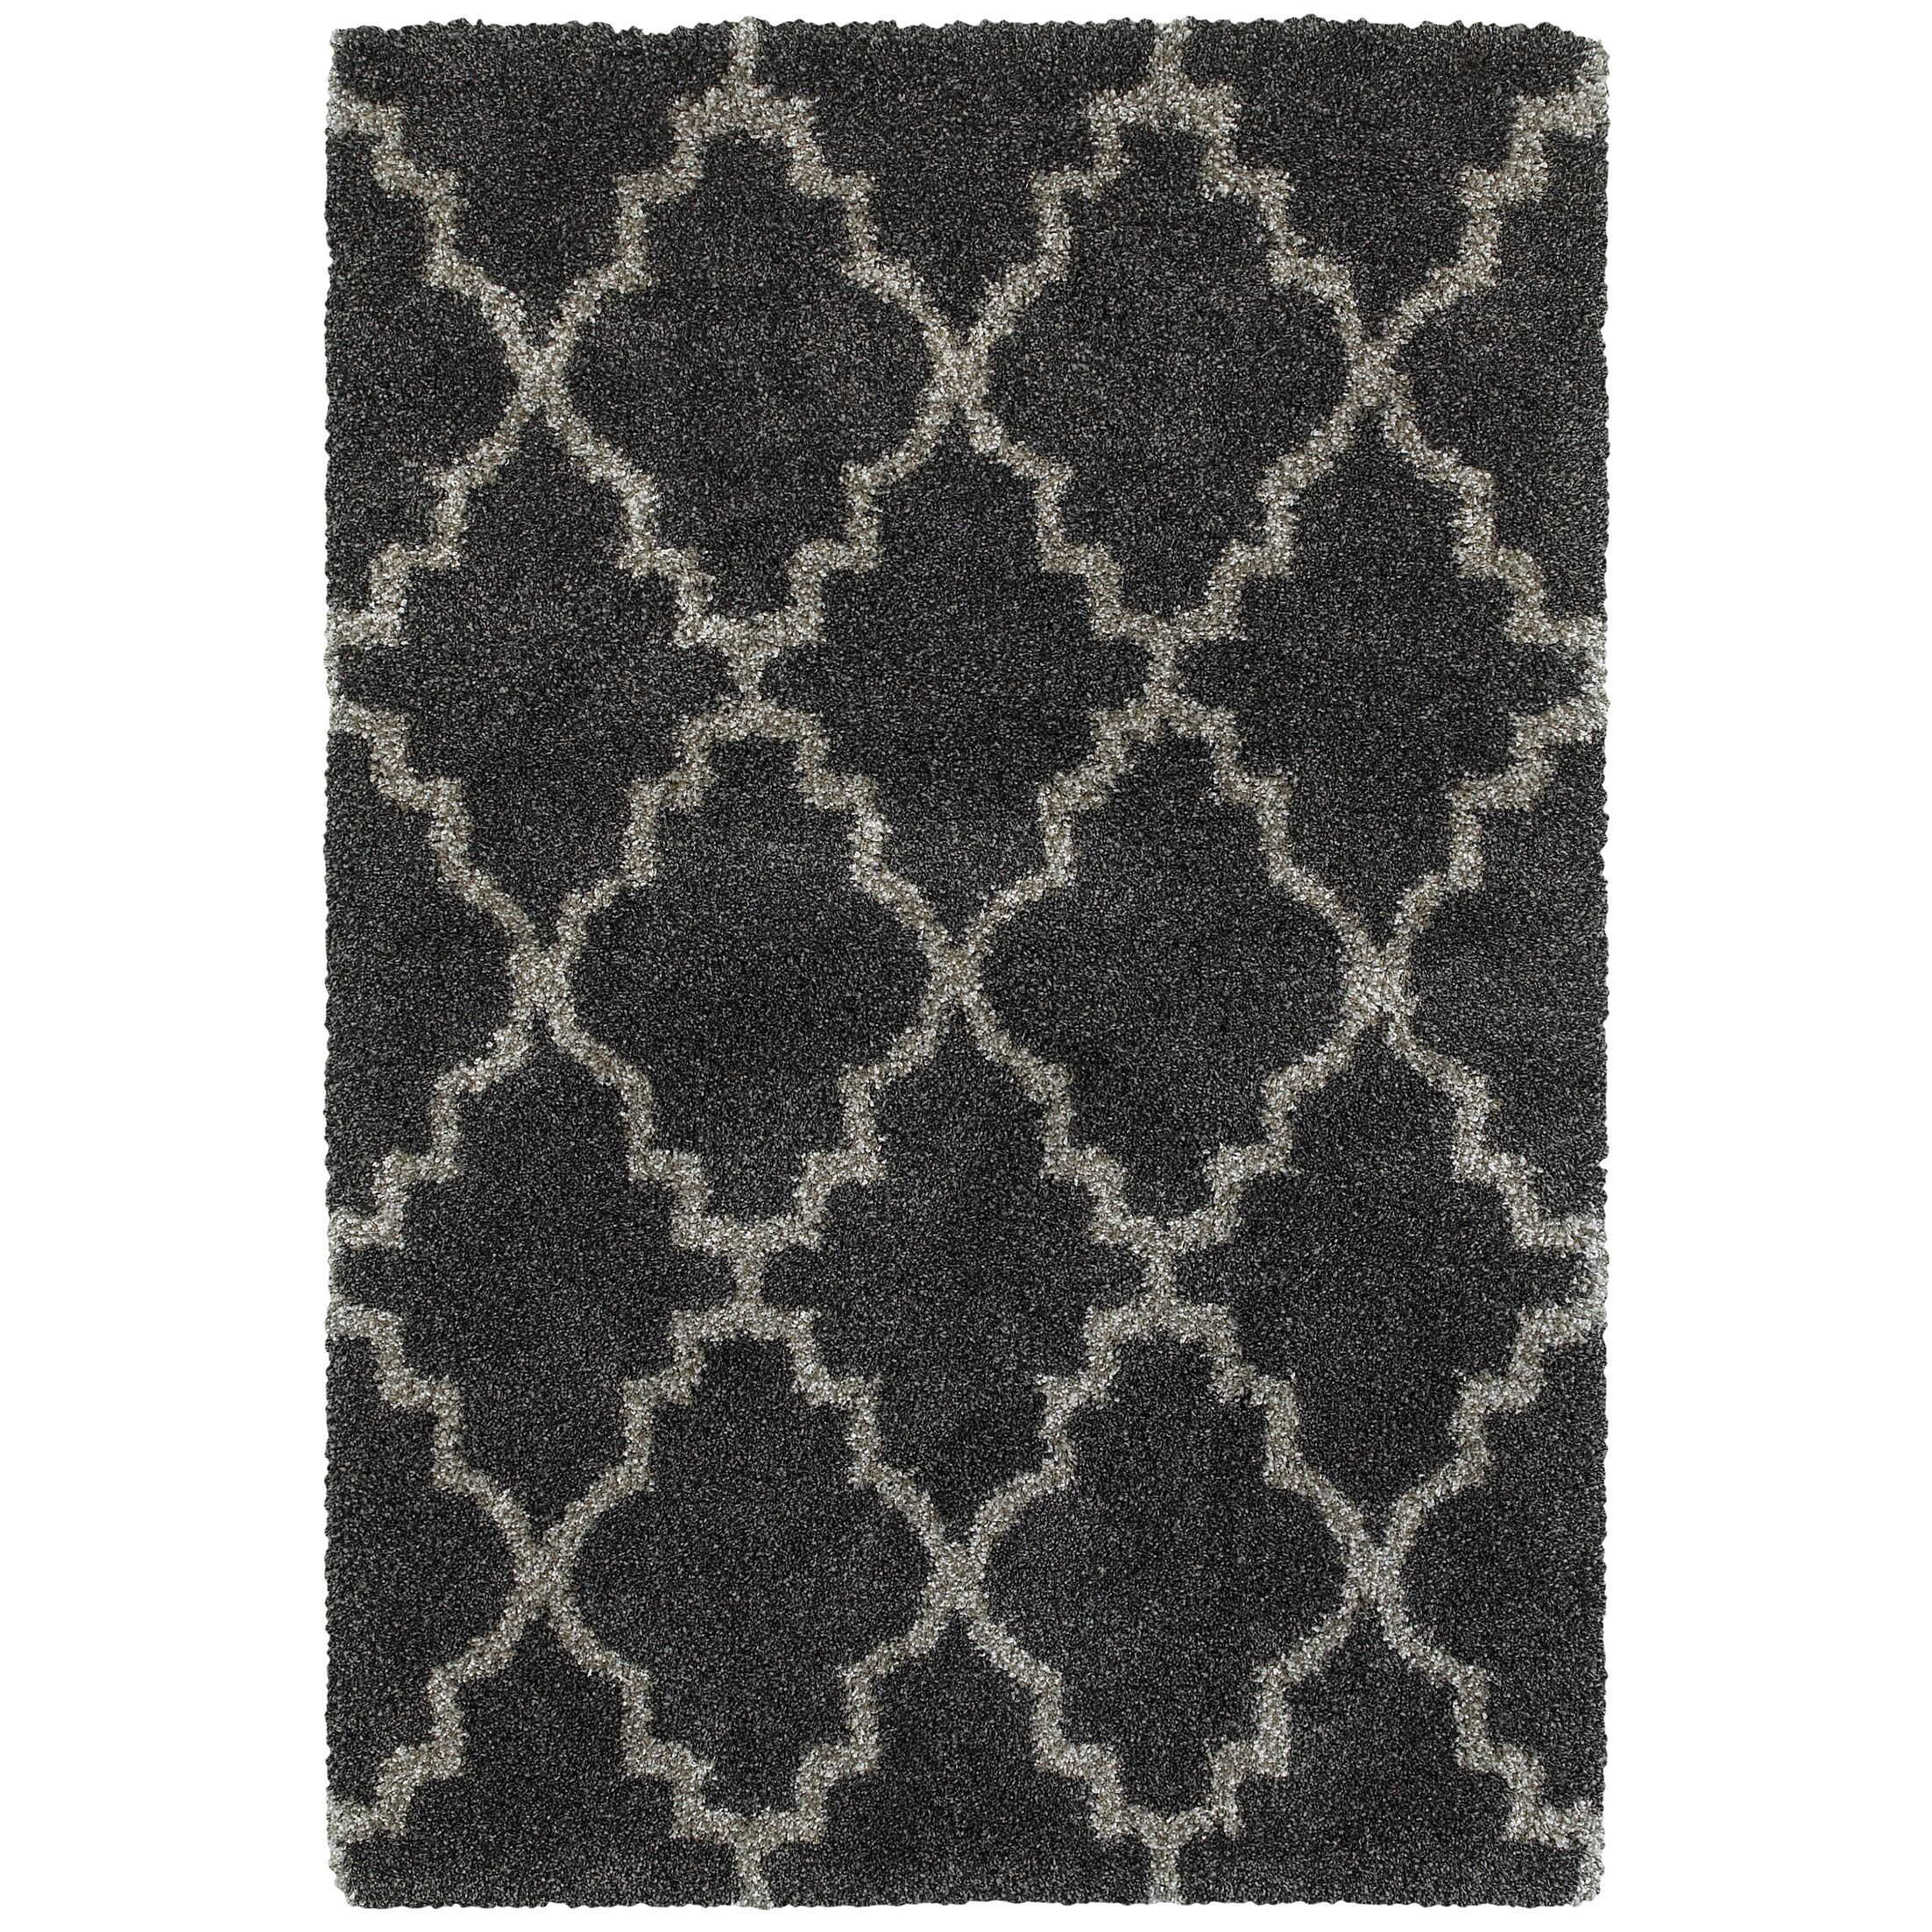 Sayer Charcoal/Gray Area Rug Size: Rectangle 7'10